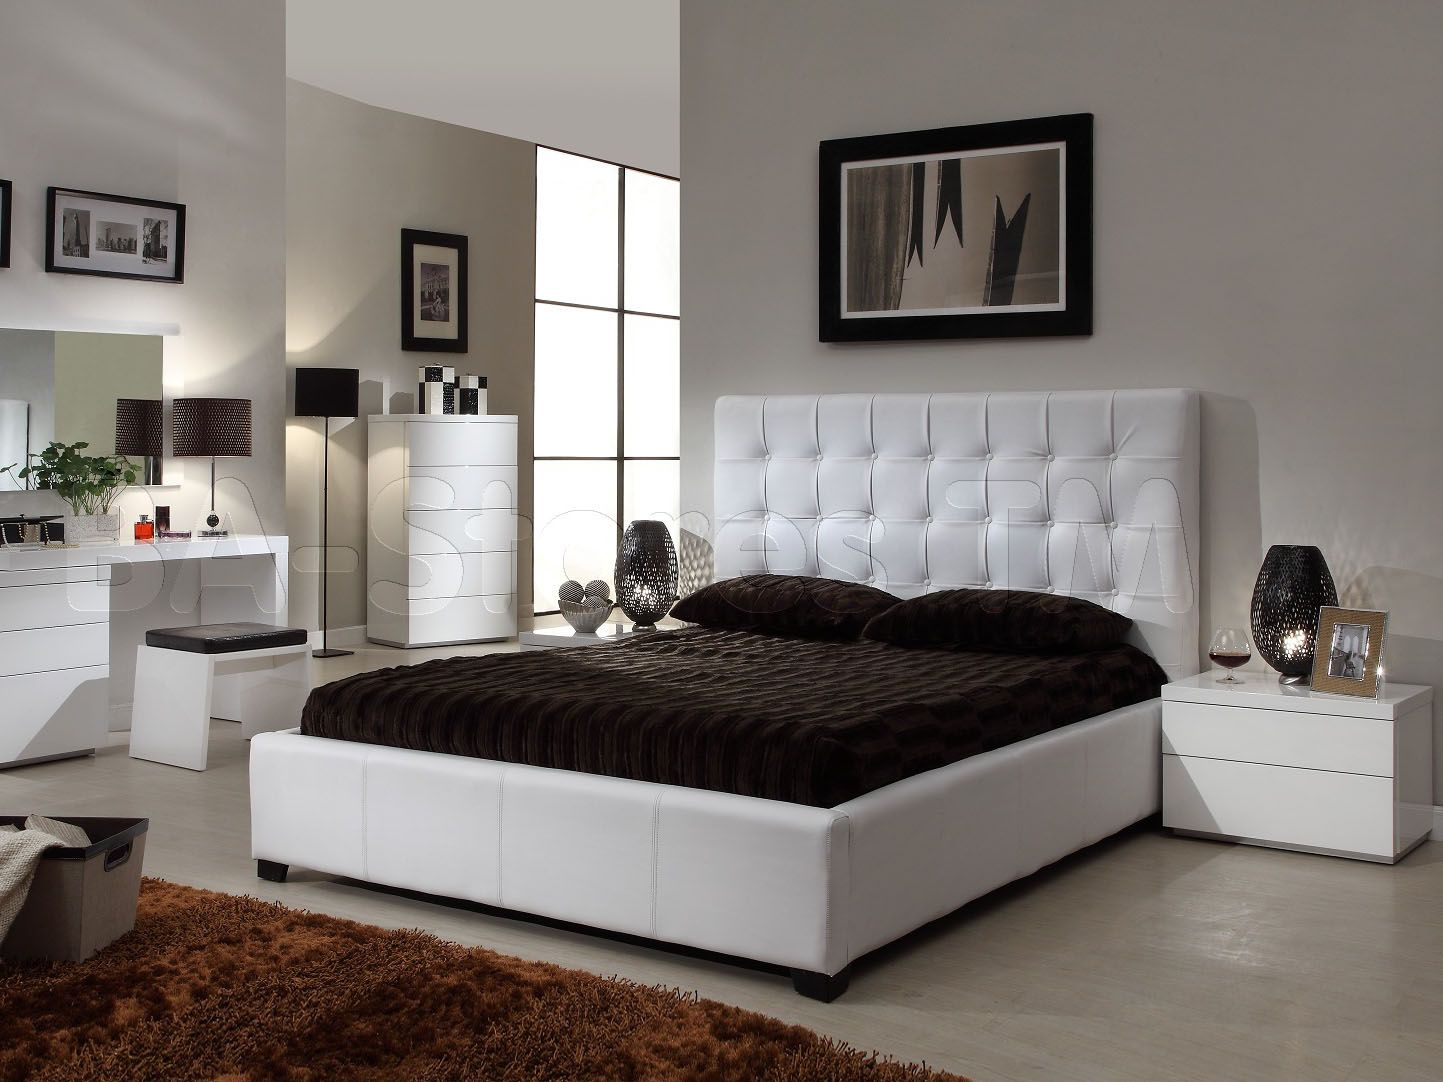 1000 images about fancy bedrooms on pinterest fancy bedroom beautiful bedrooms and interior ideas bedrooms furnitures design latest designs bedroom